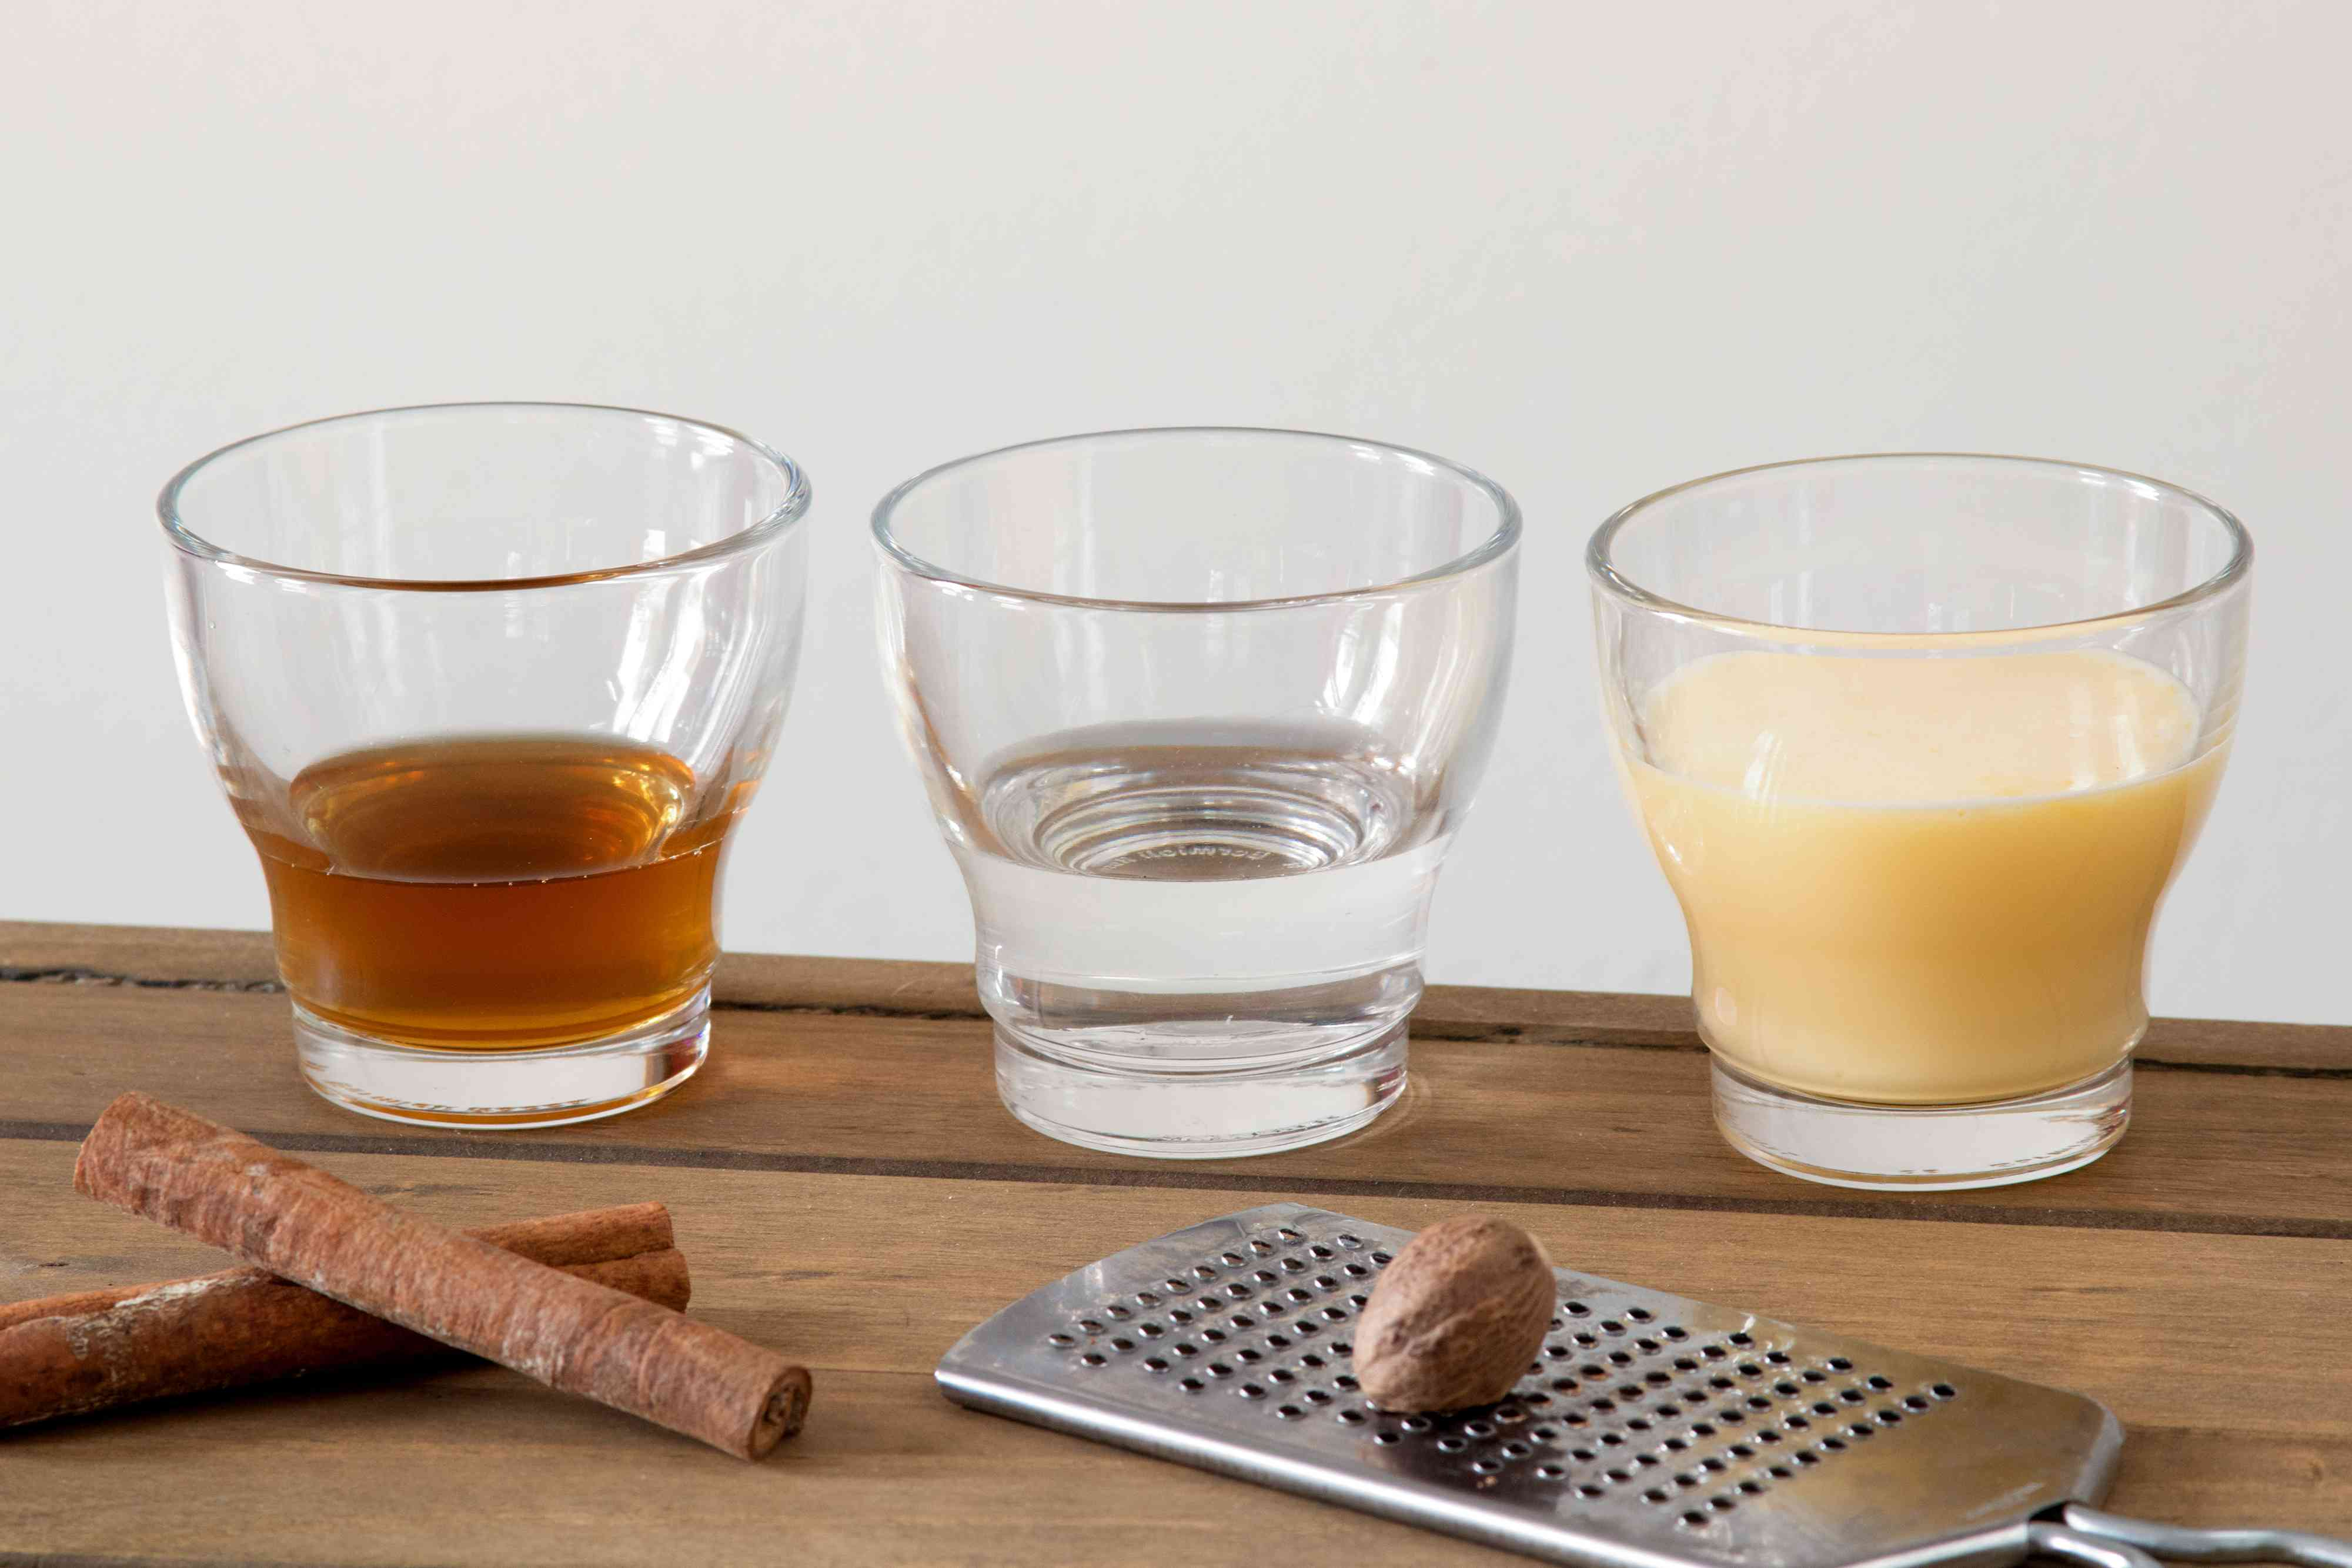 Ingredients for an Eggnog Martini